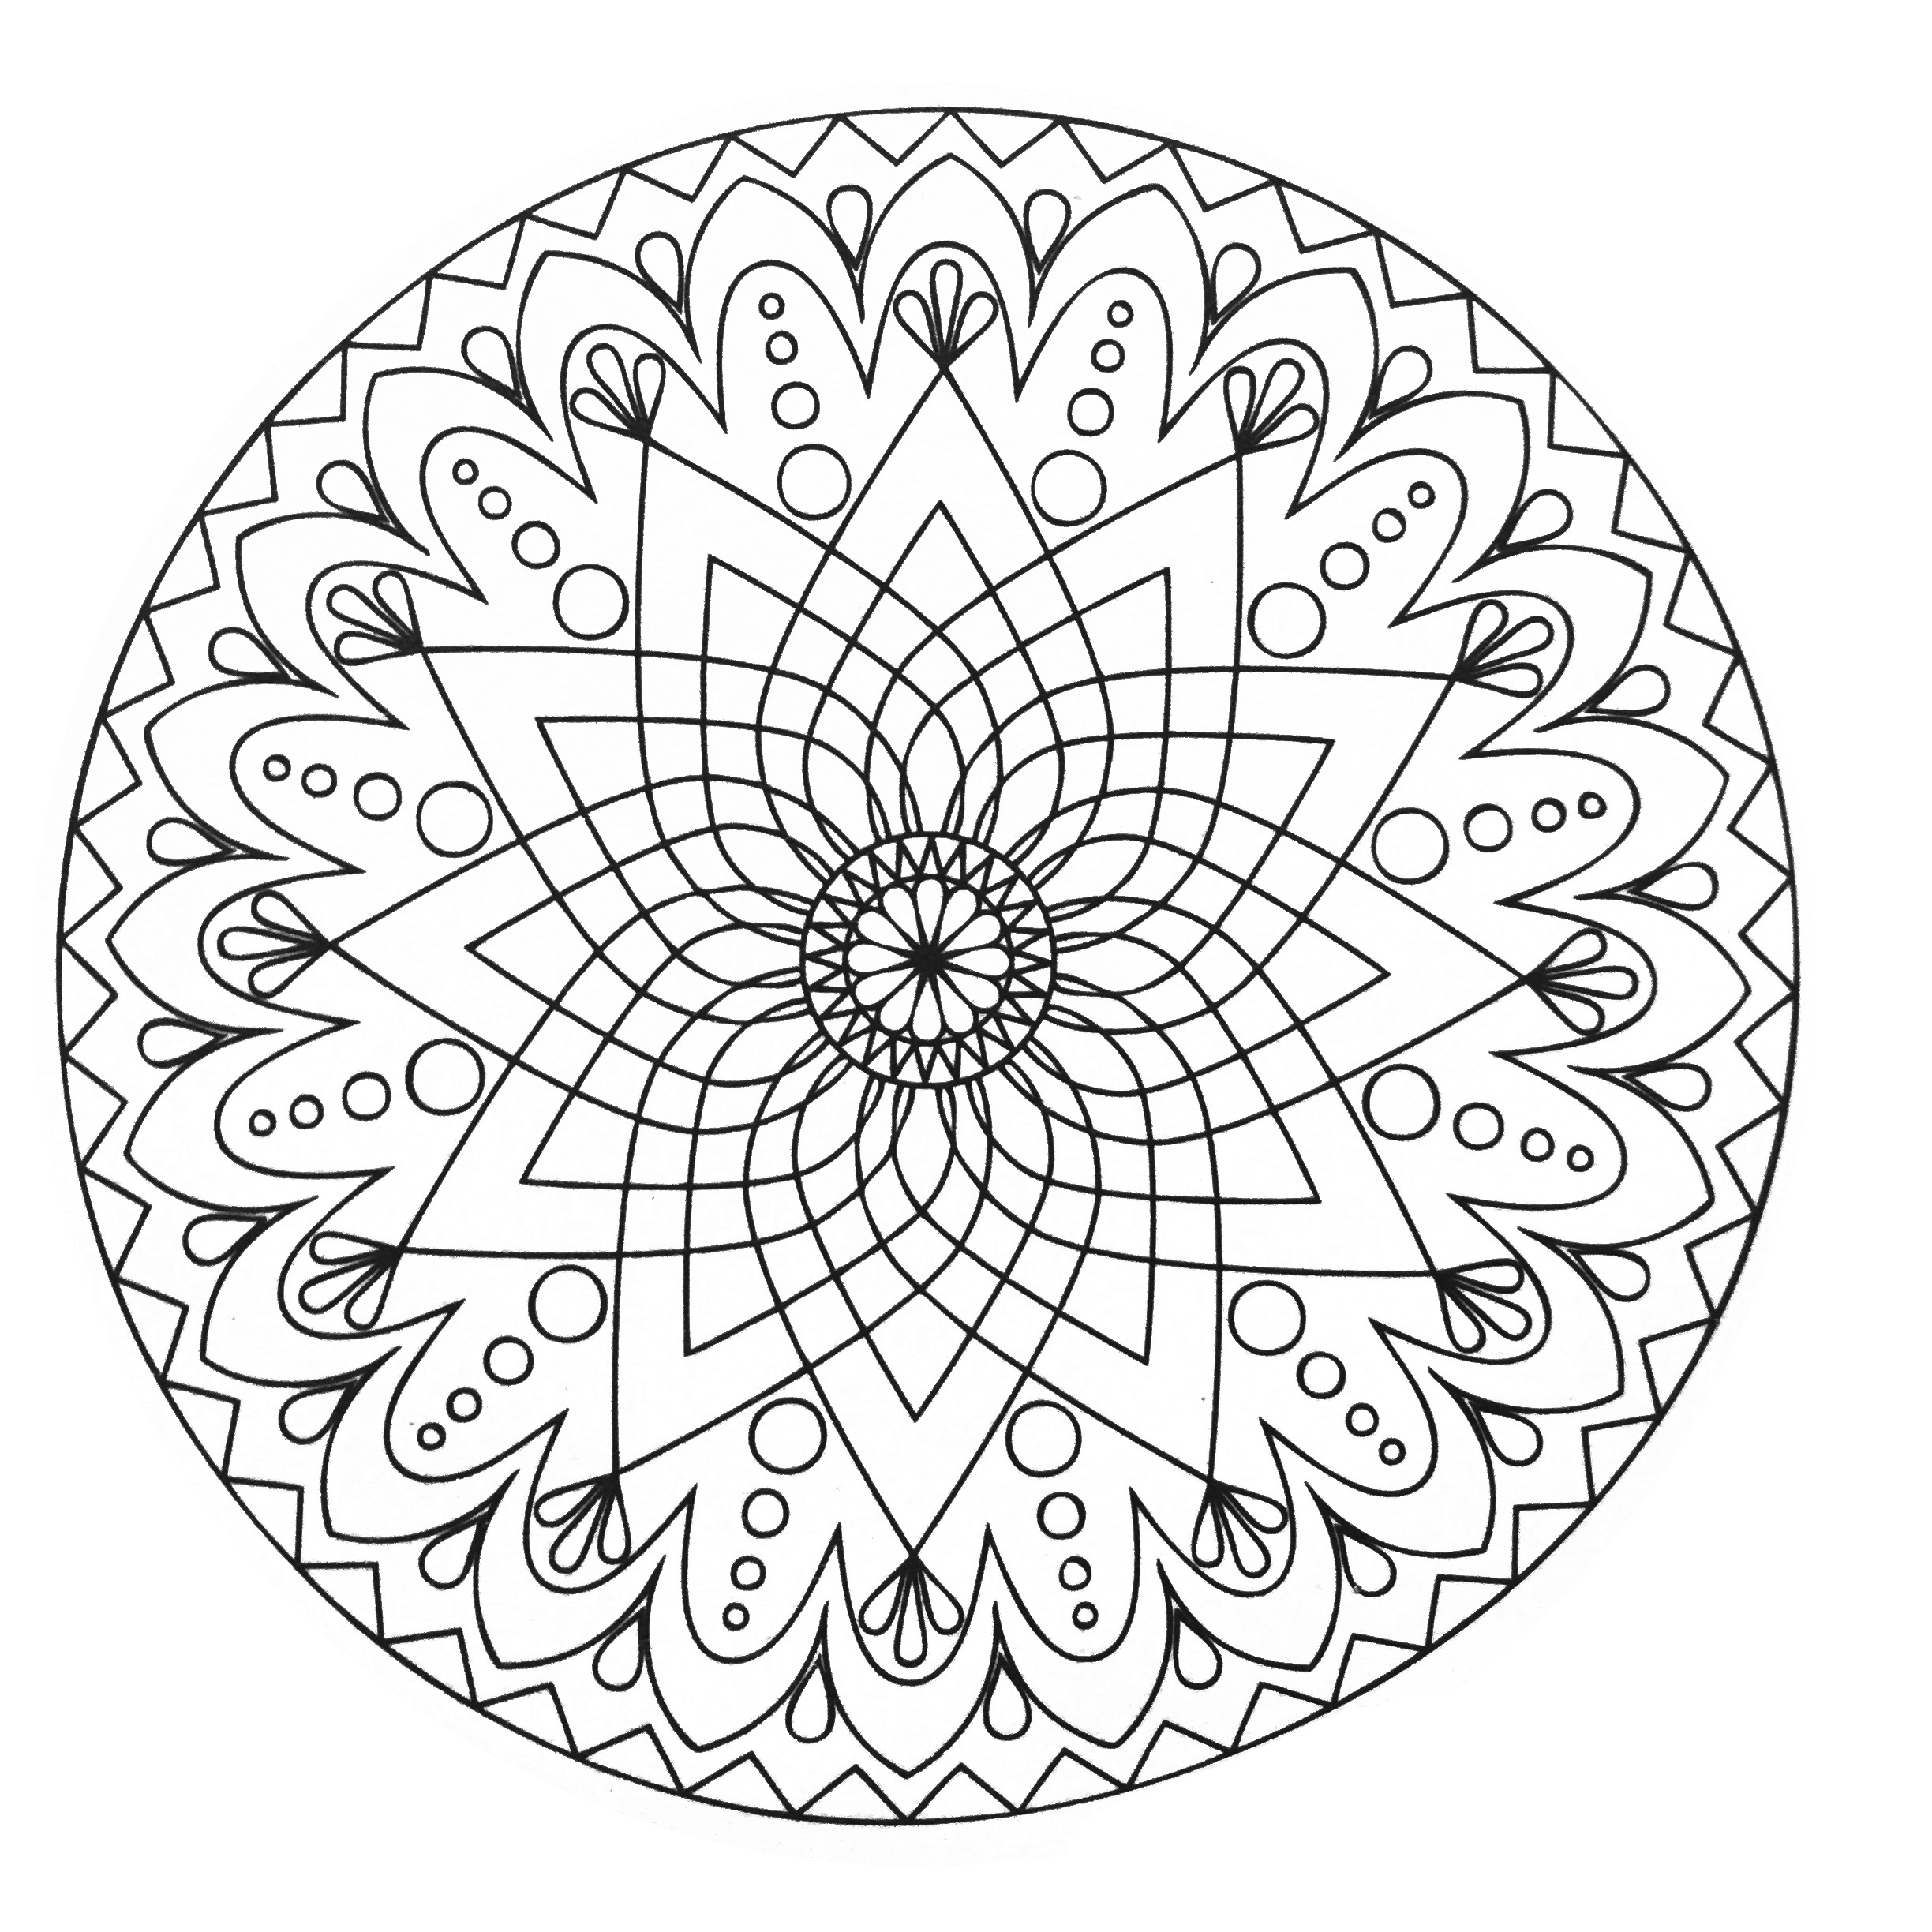 Mandala abstrait simple mandalas coloriages difficiles pour adultes - Mandala colorier ...